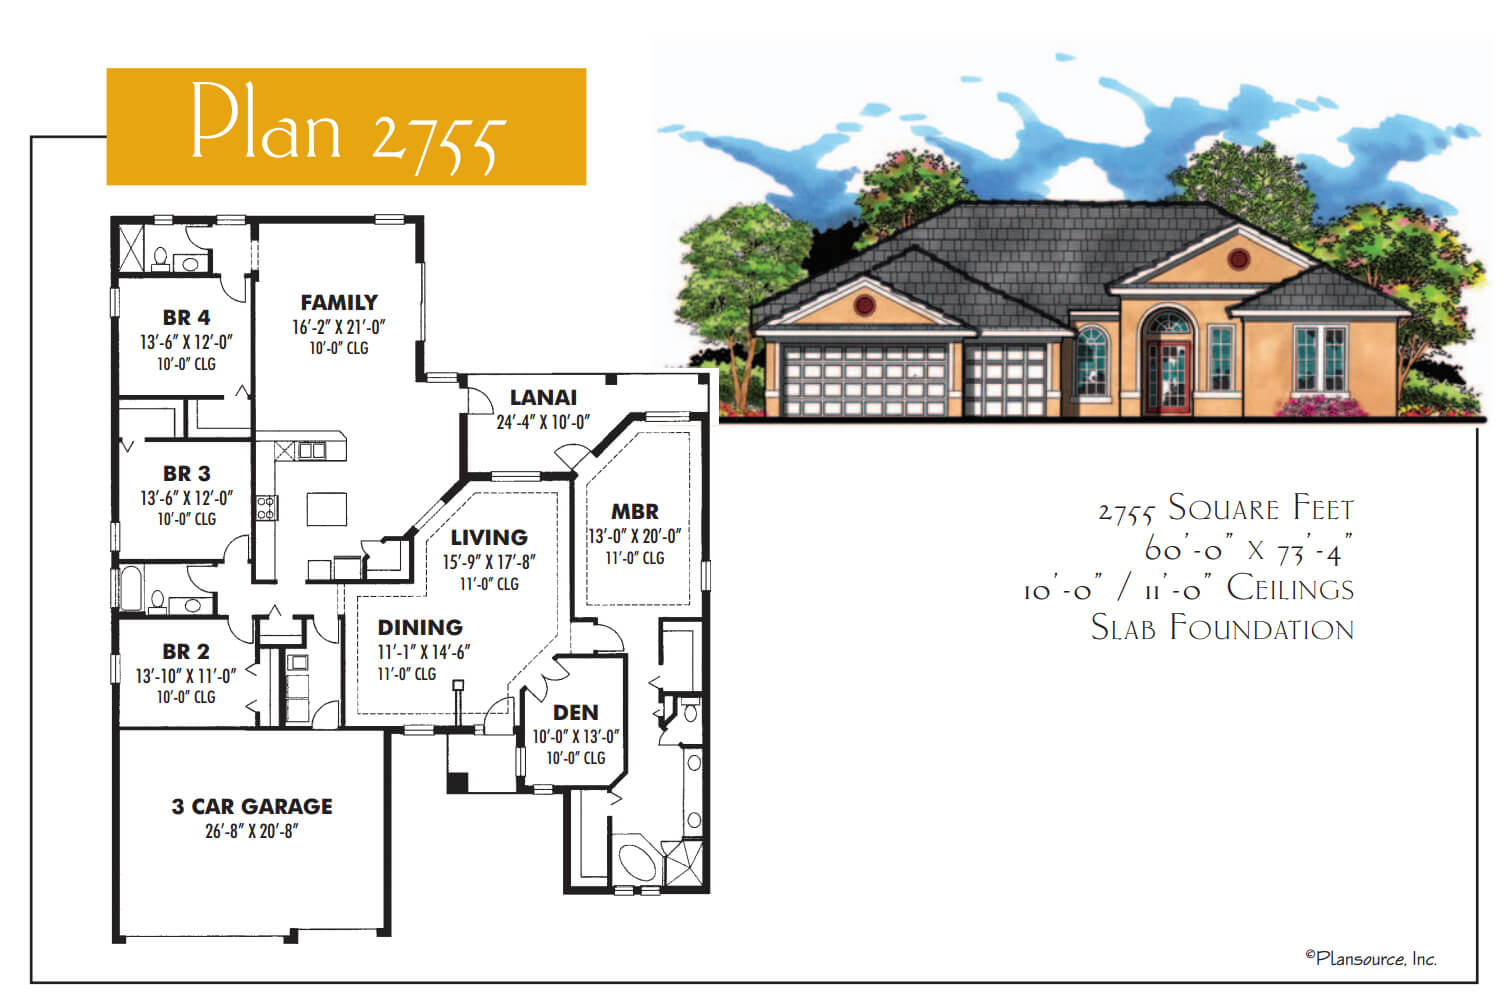 Floor Plans,2,501 SQ FT TO 3,000 SQ FT,1067